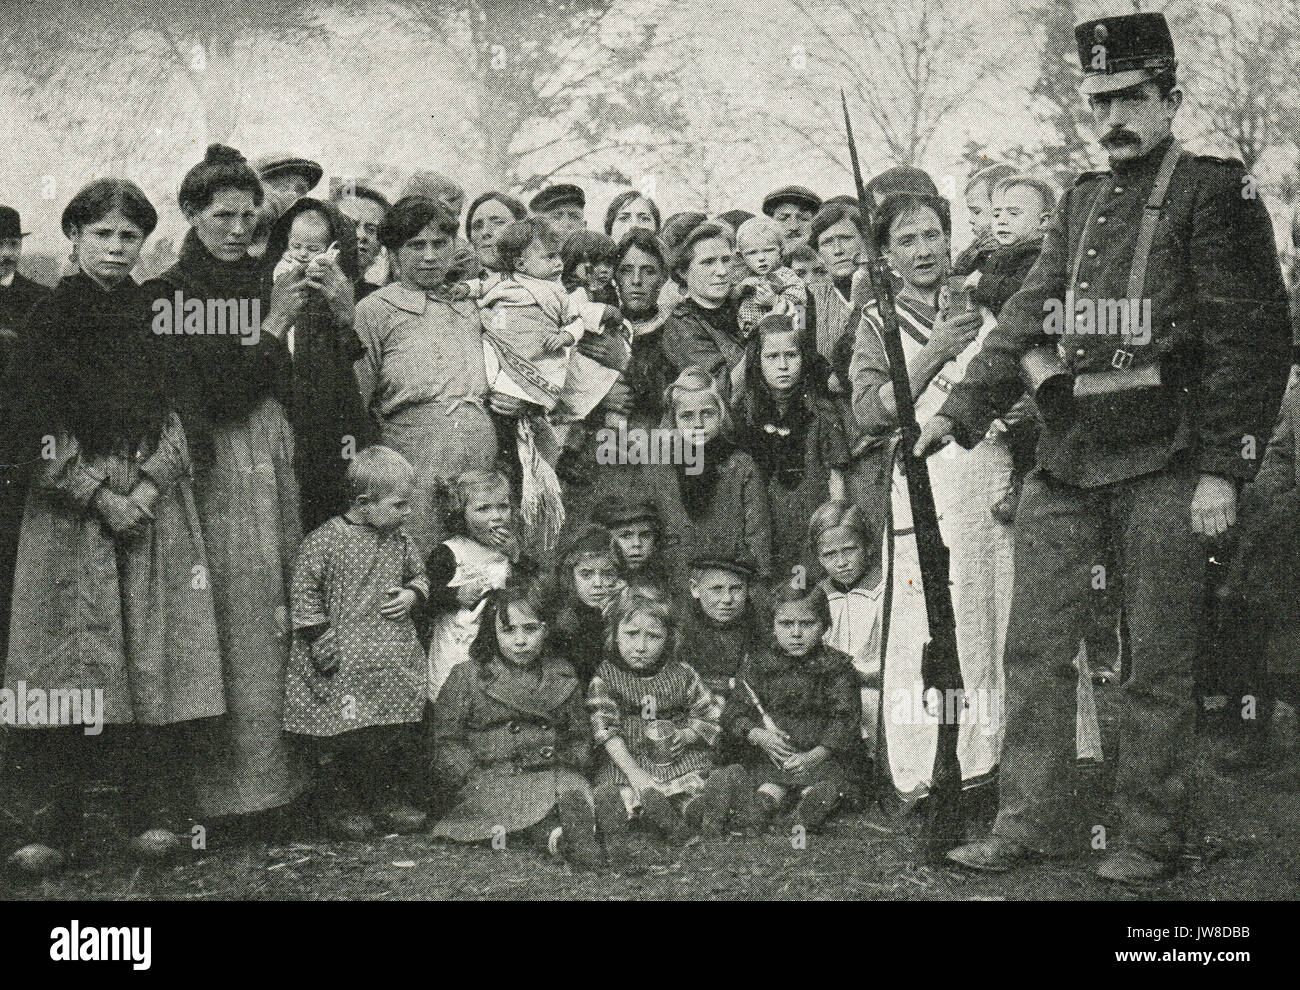 Dutch guarded camp for civilian Belgian refugees, Bergen op Zoom - Stock Image